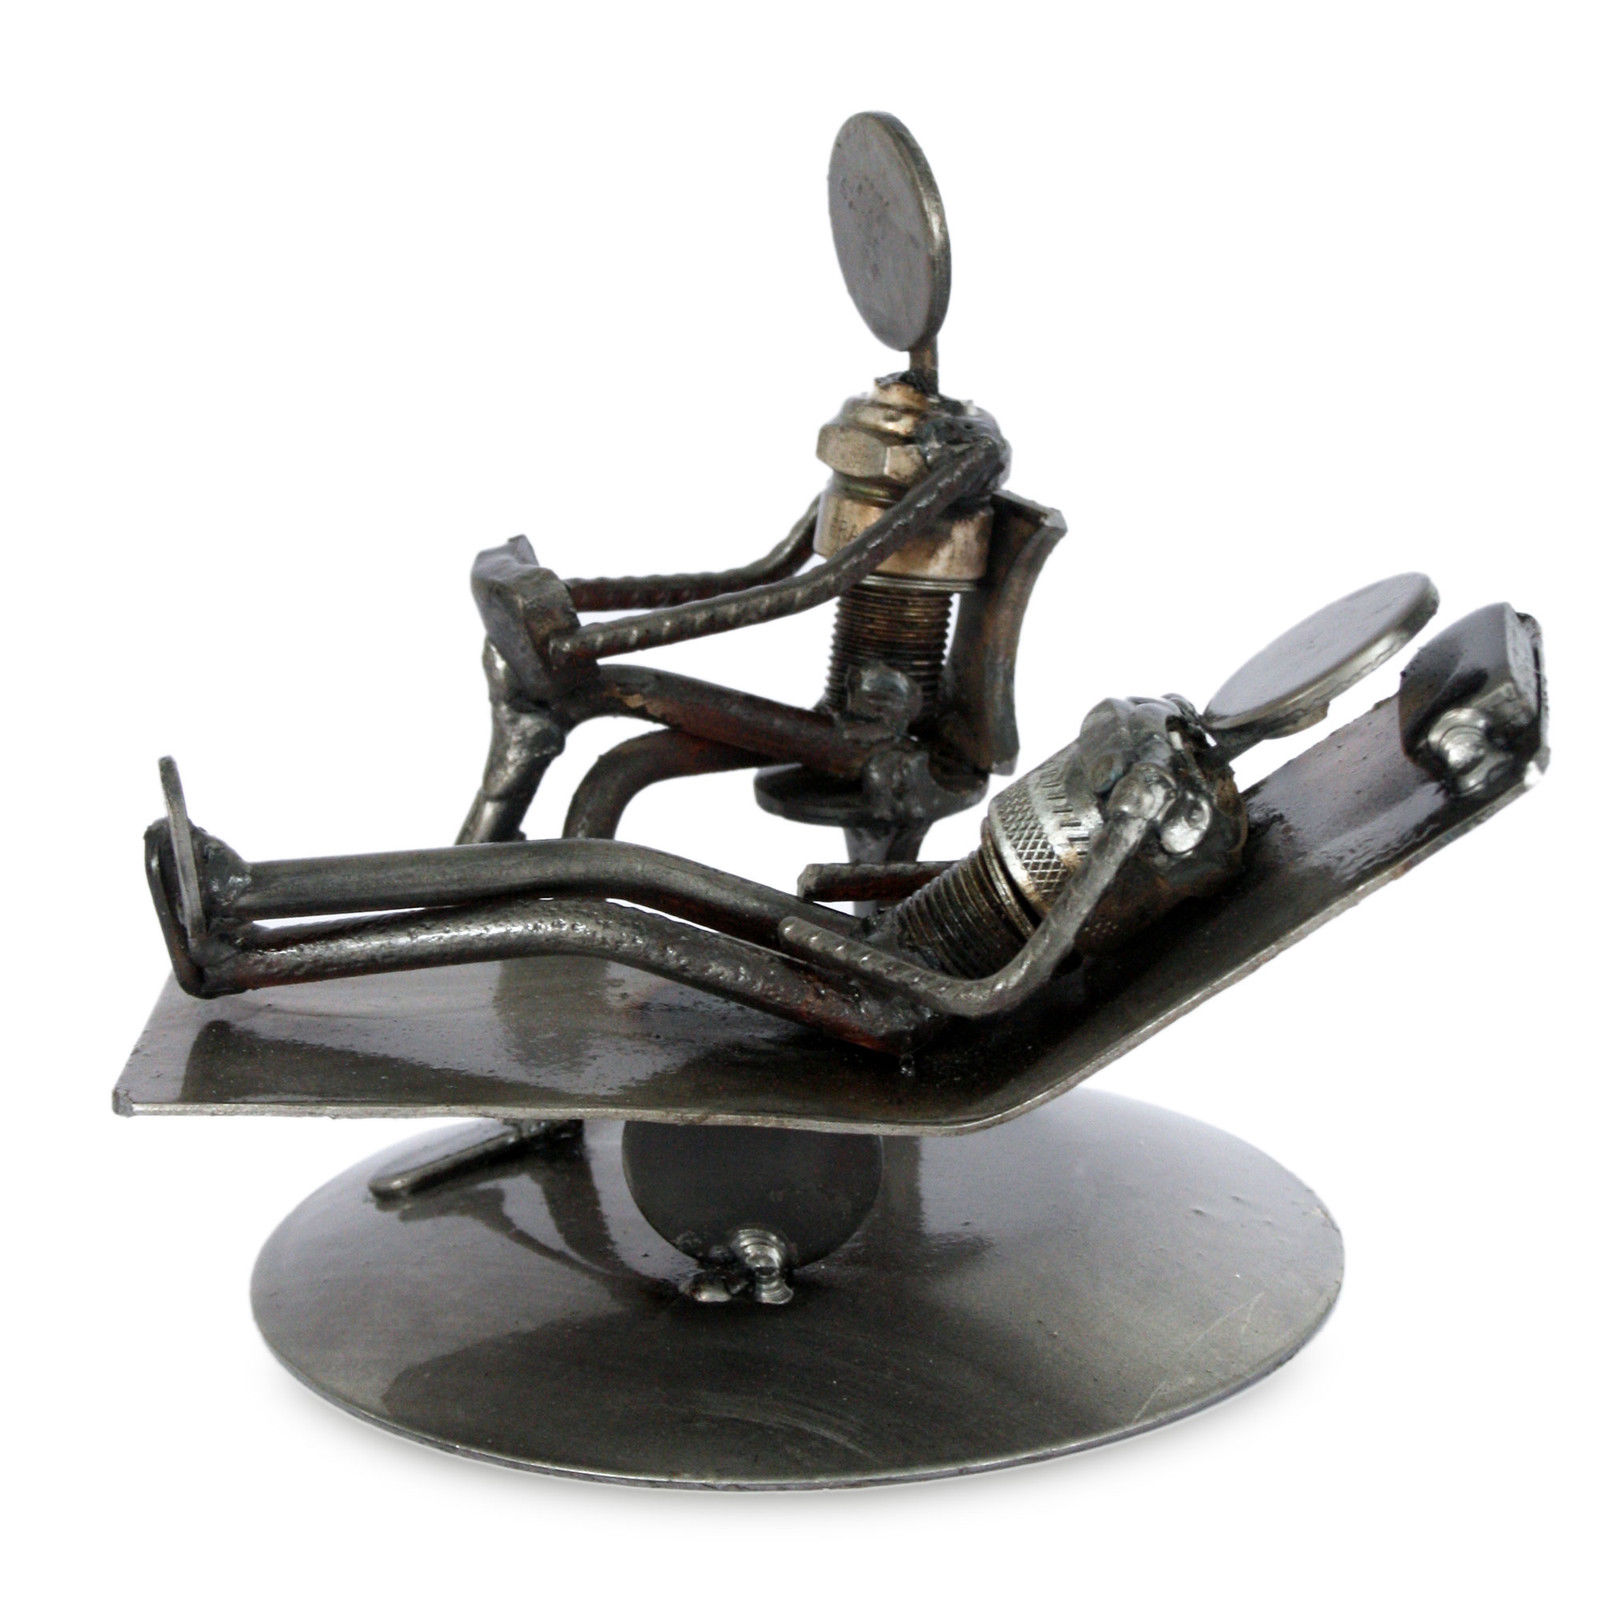 Iron Statuette Recyled Car Parts 'Rustic Psychotherapist' NOVICA ...